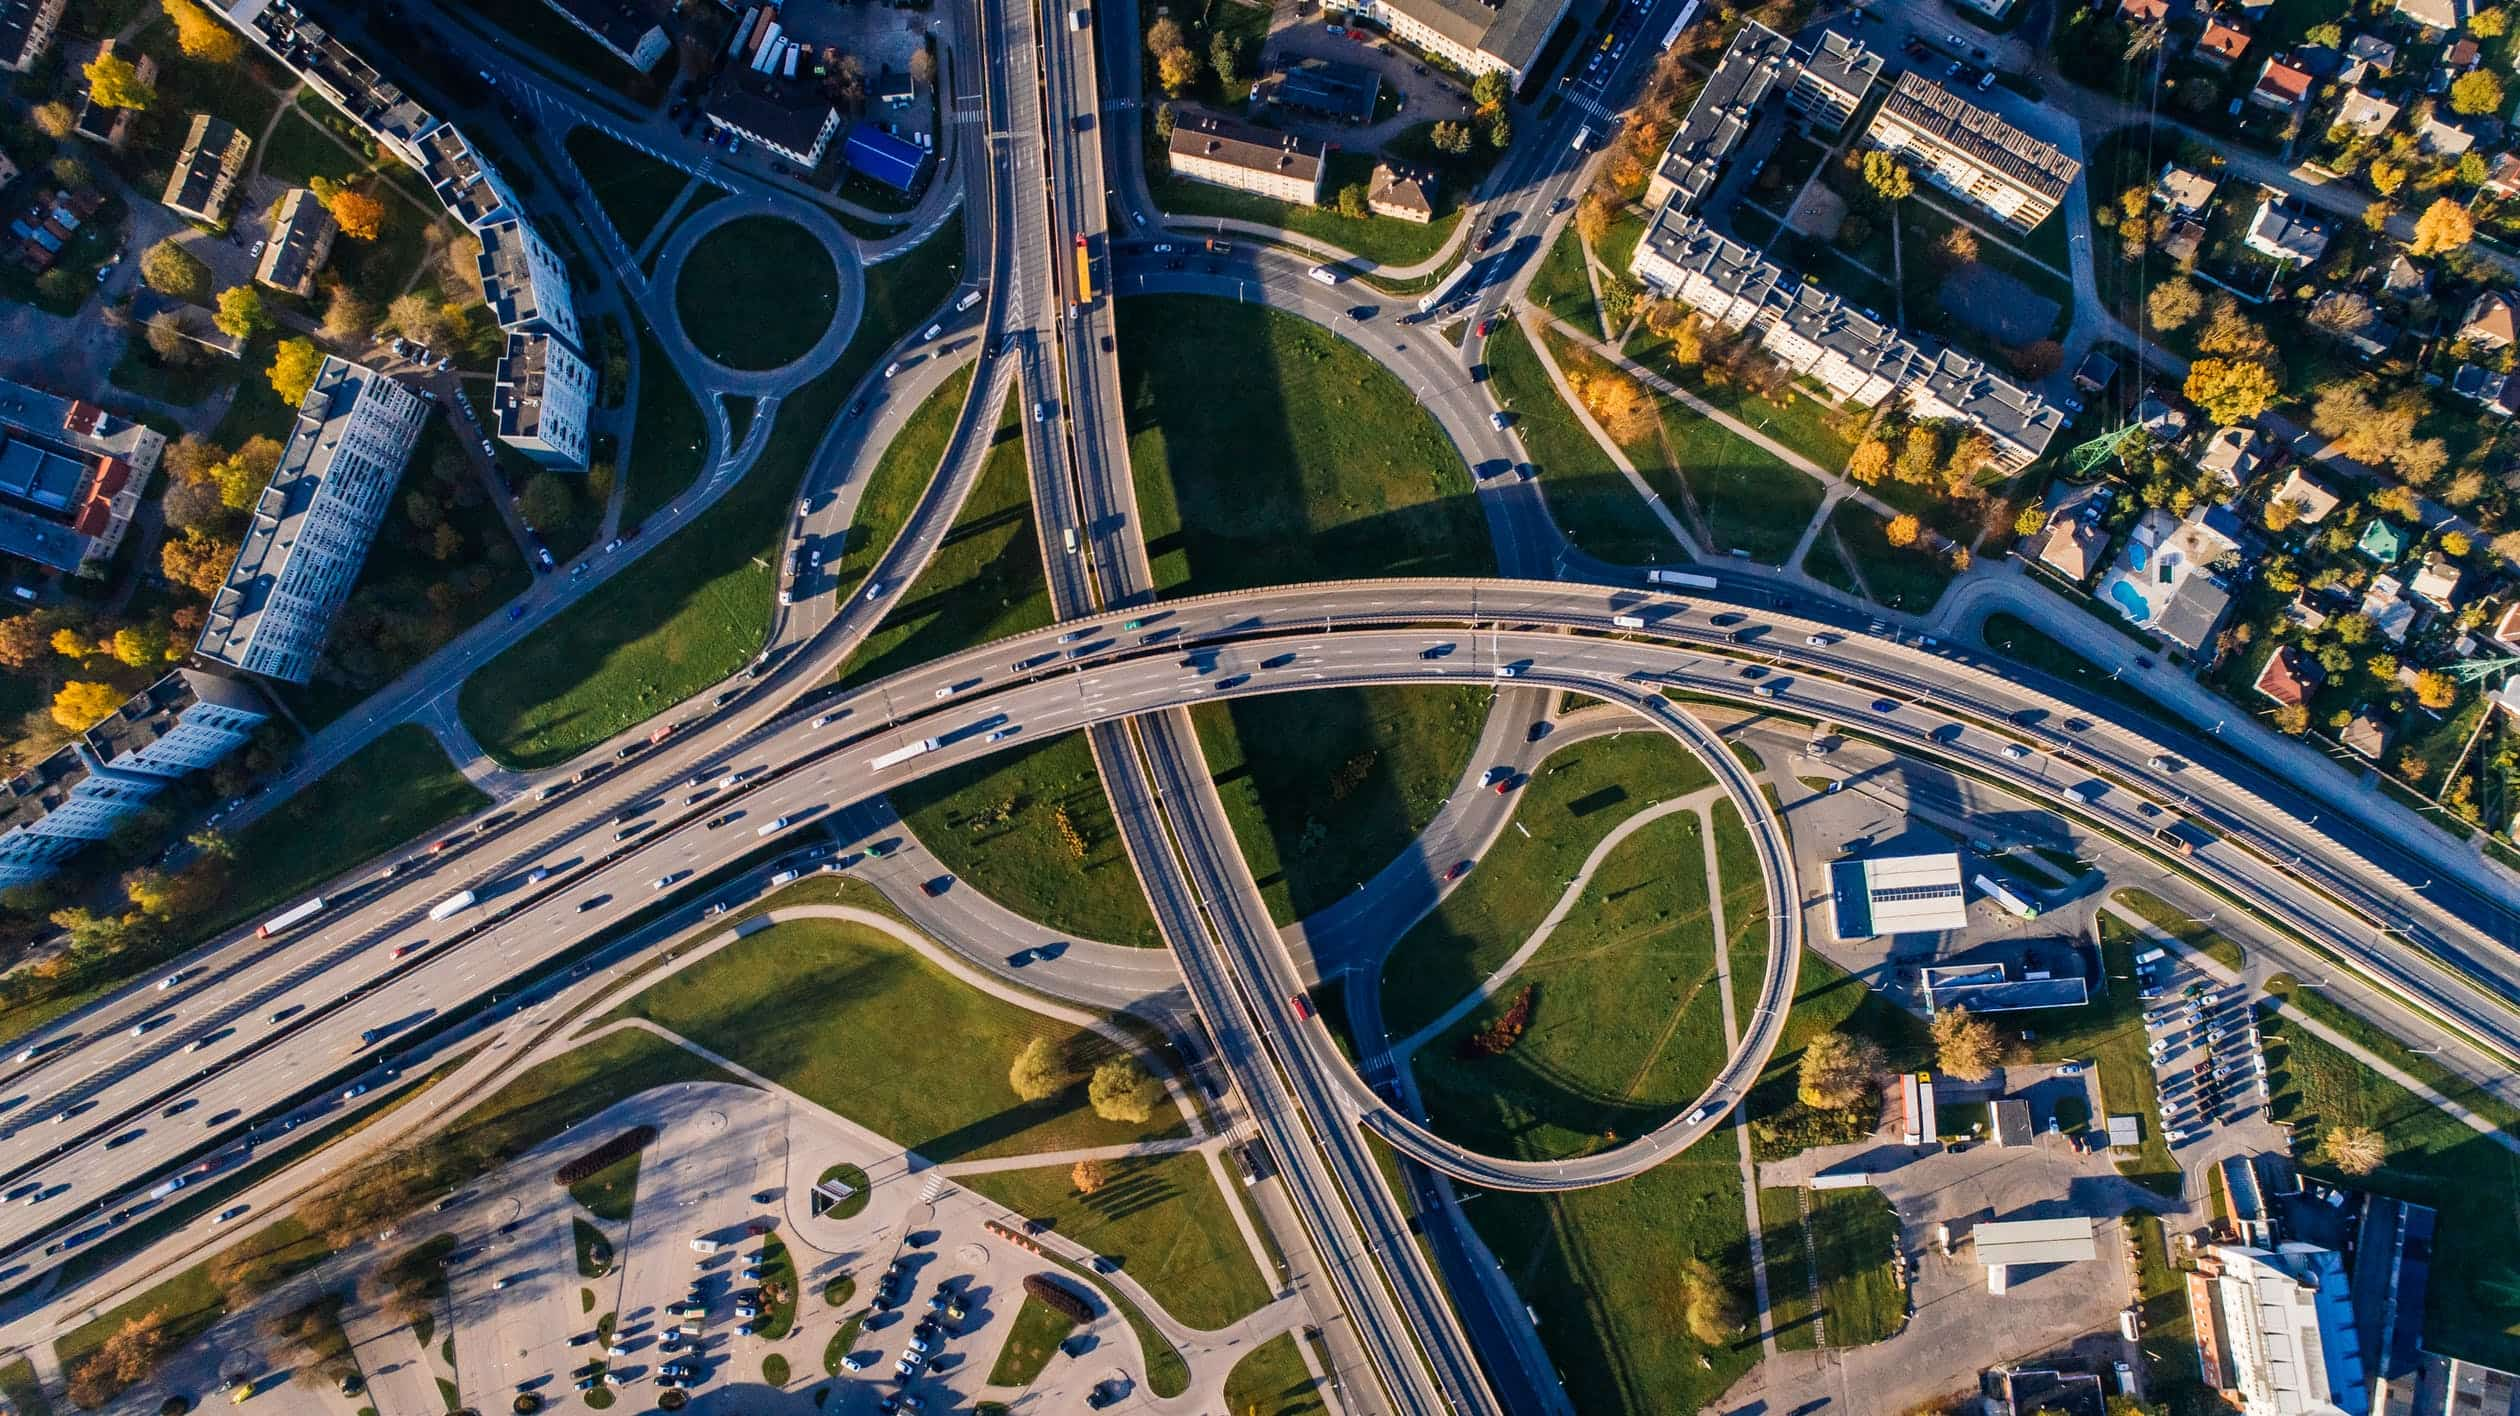 Aerial view of infrastructure in America